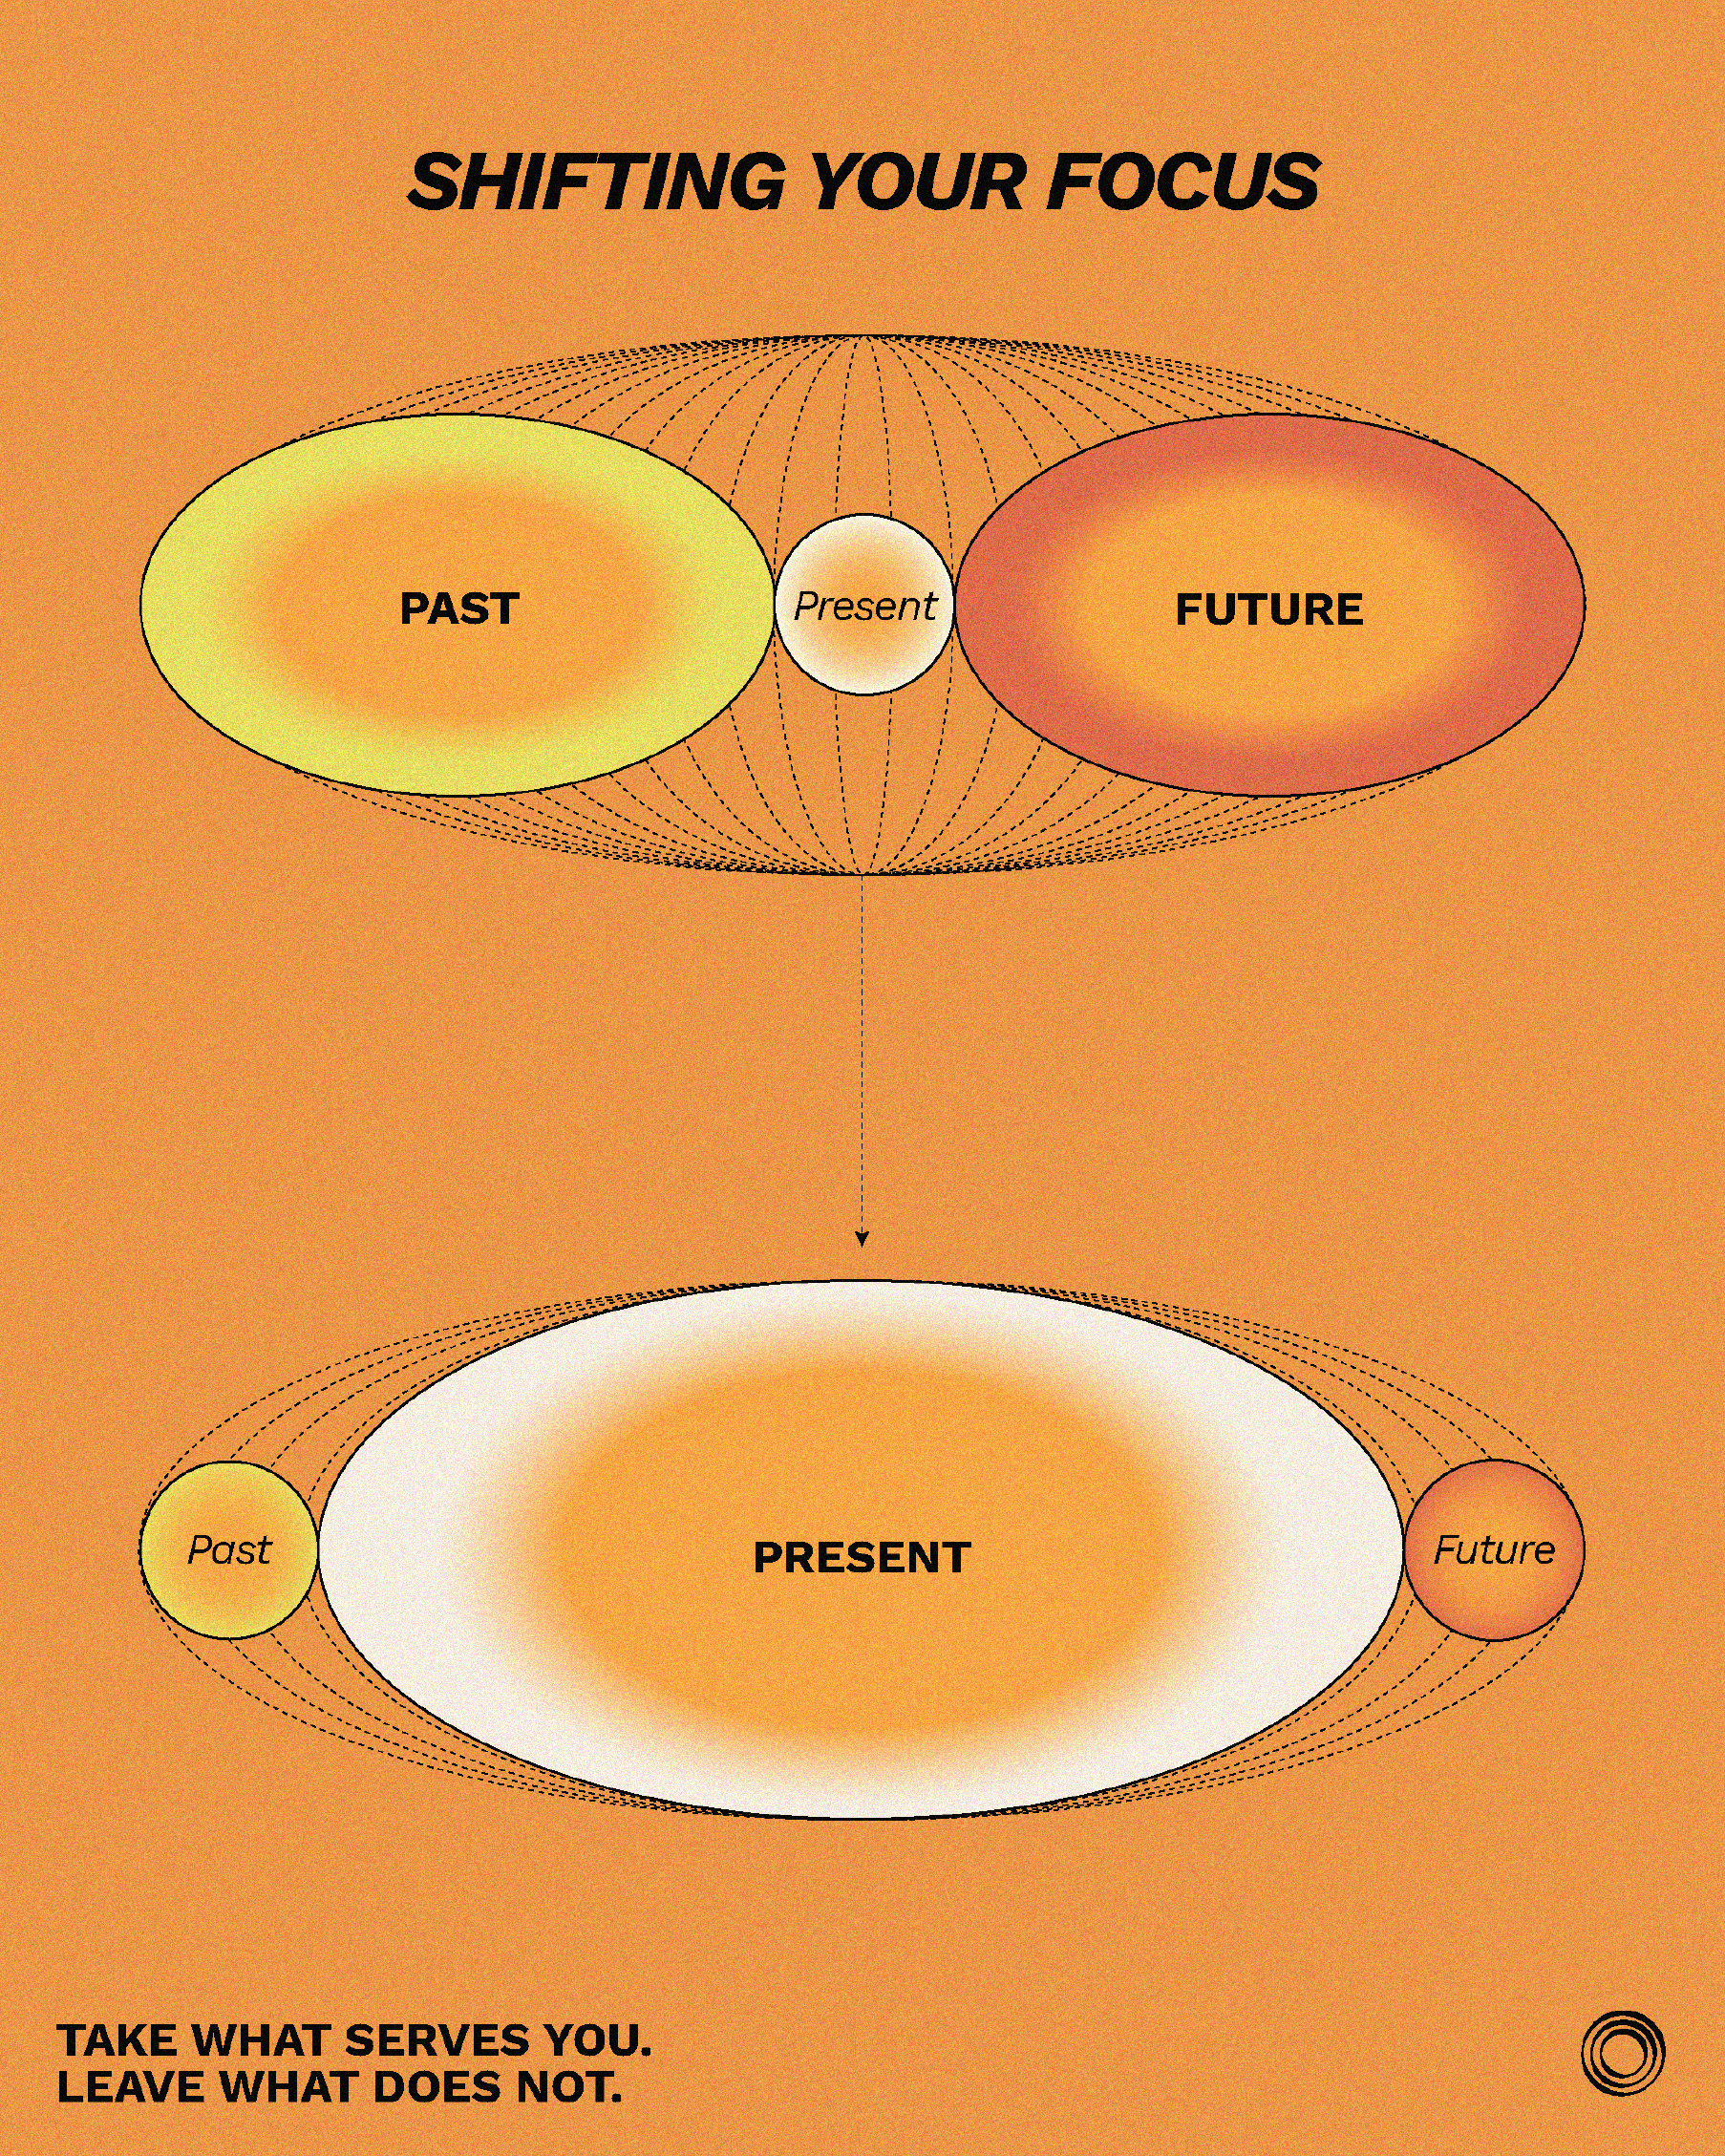 Displays the importance of the present moment in comparison to past and future through oval shapes